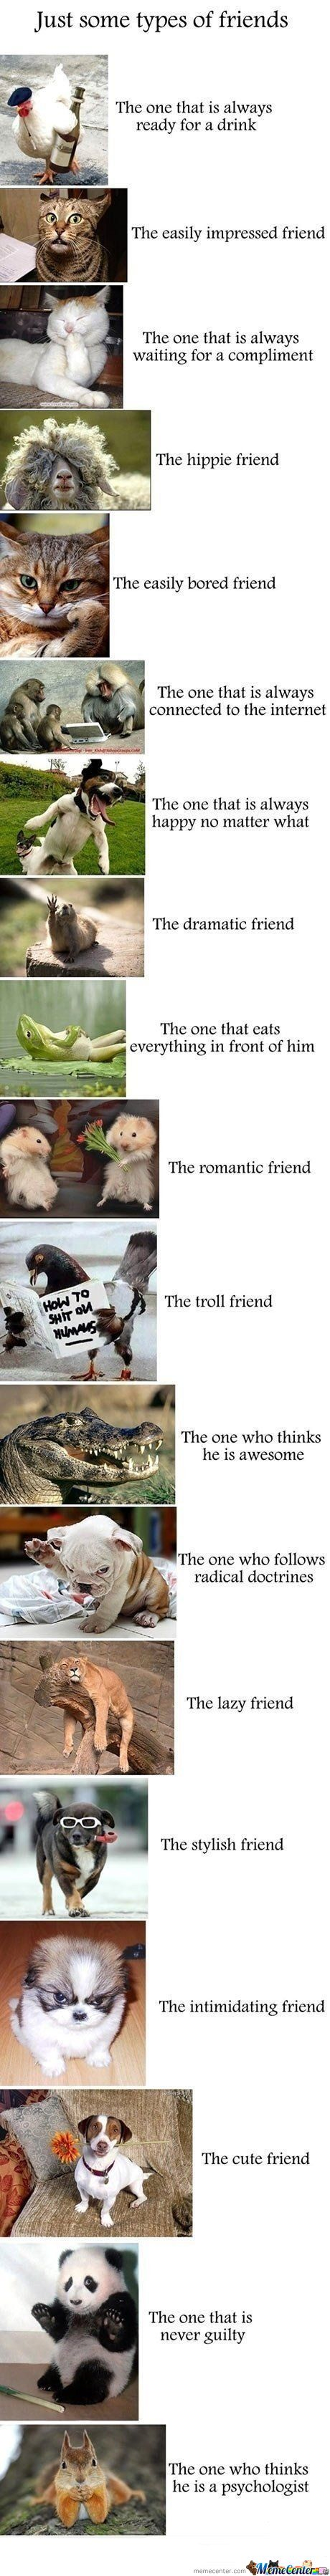 Types Of Friends (Sorry For Long Post)